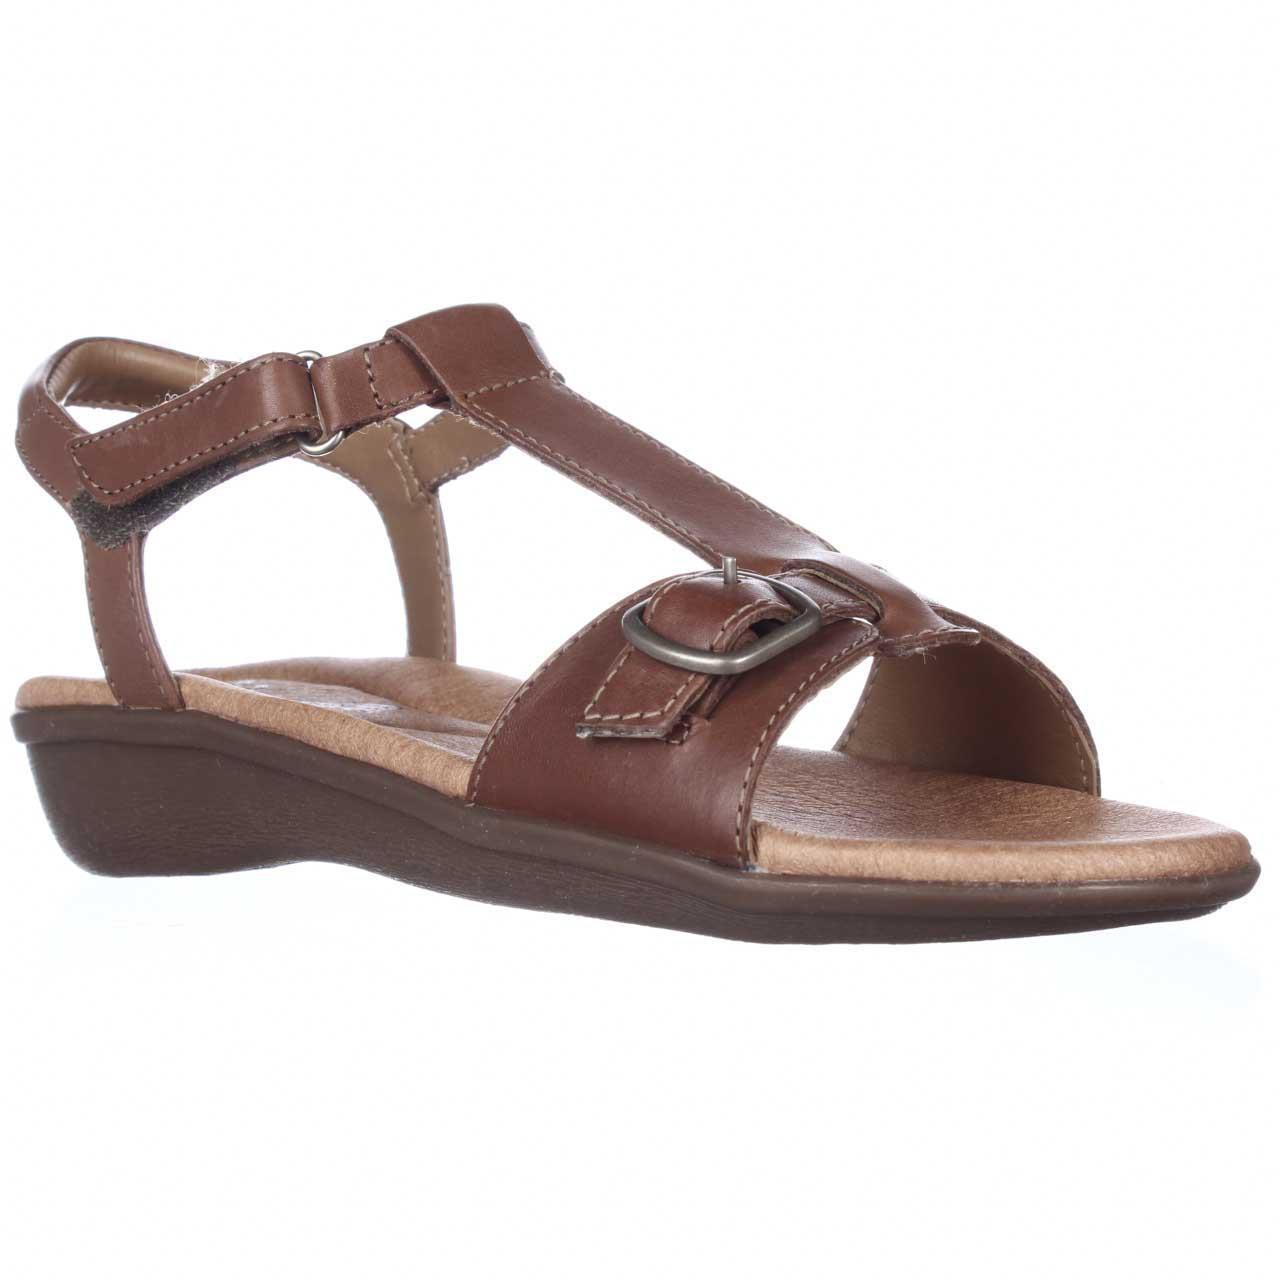 b775f0455 Lyst - Clarks Manilla Lift Comfort Ankle Strap Sandals in Brown